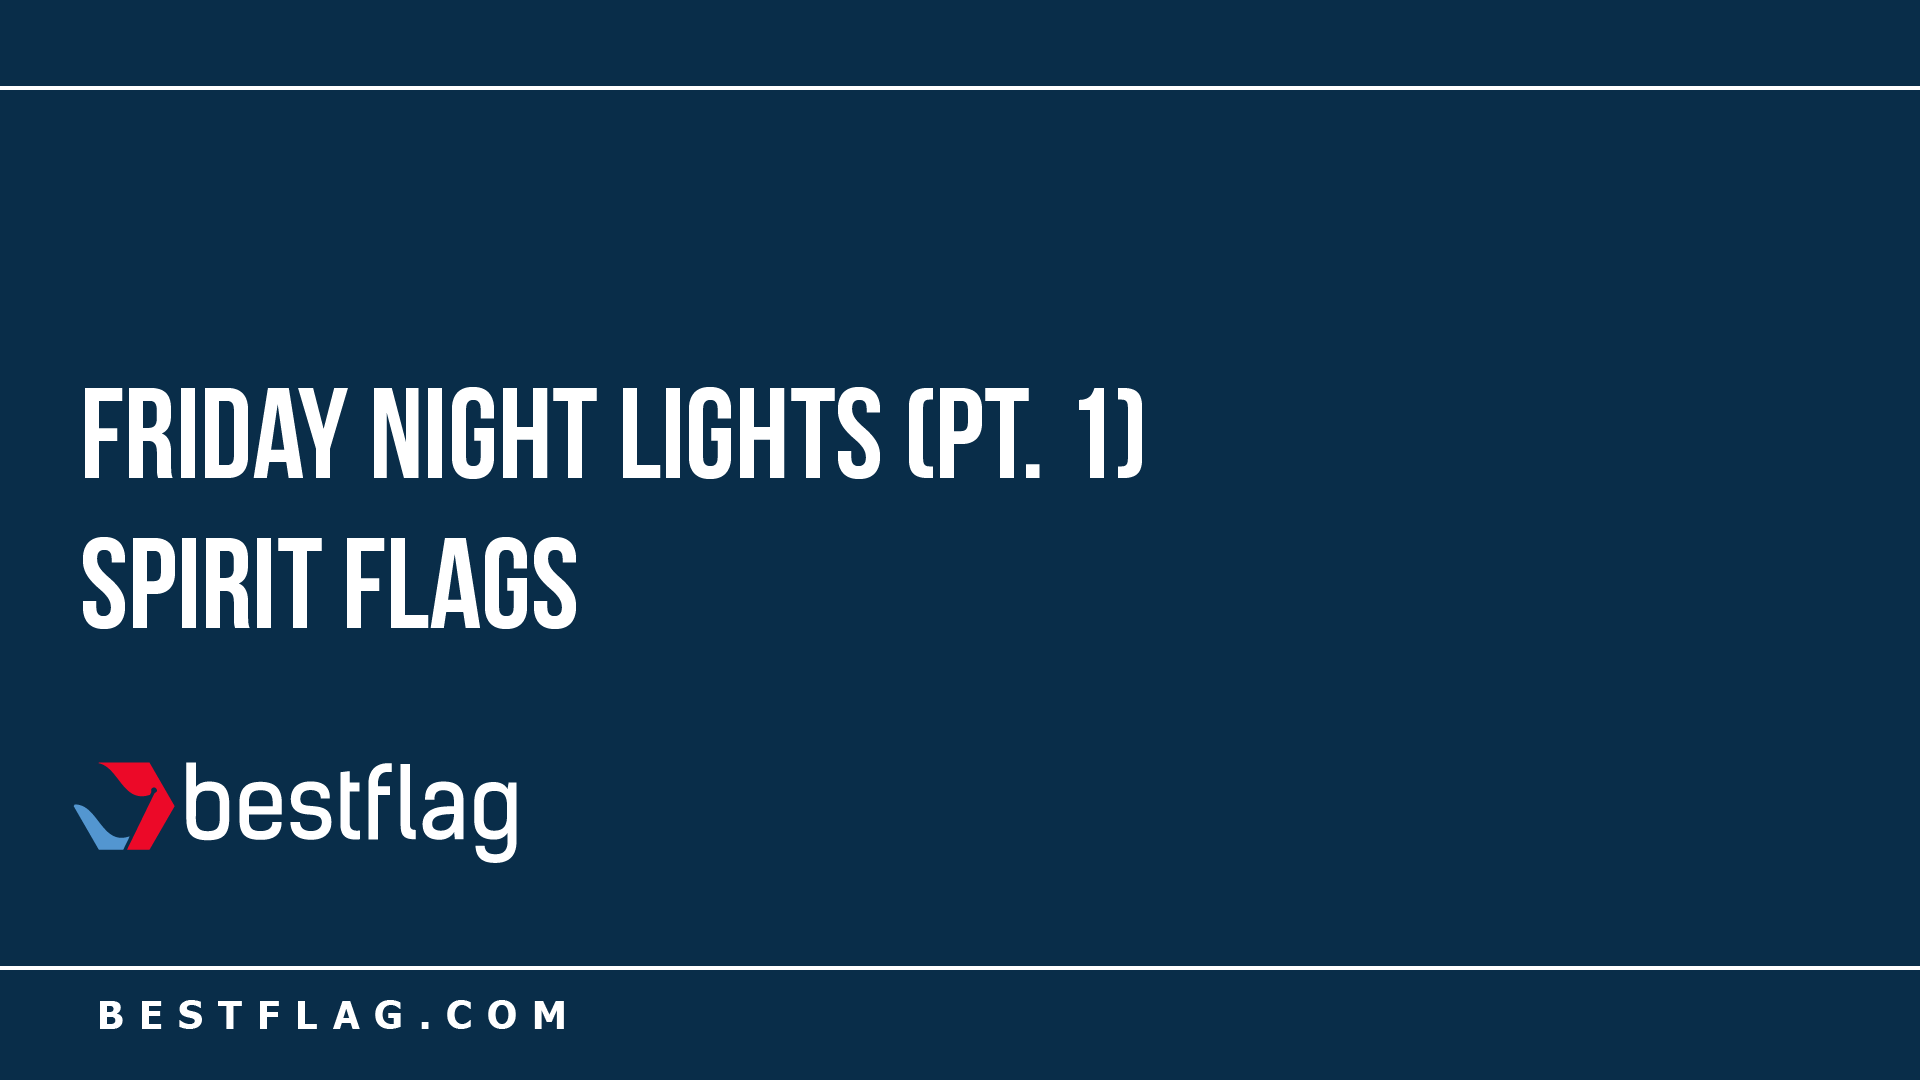 Friday Night Lights (Pt. 1) - Spirit Flags